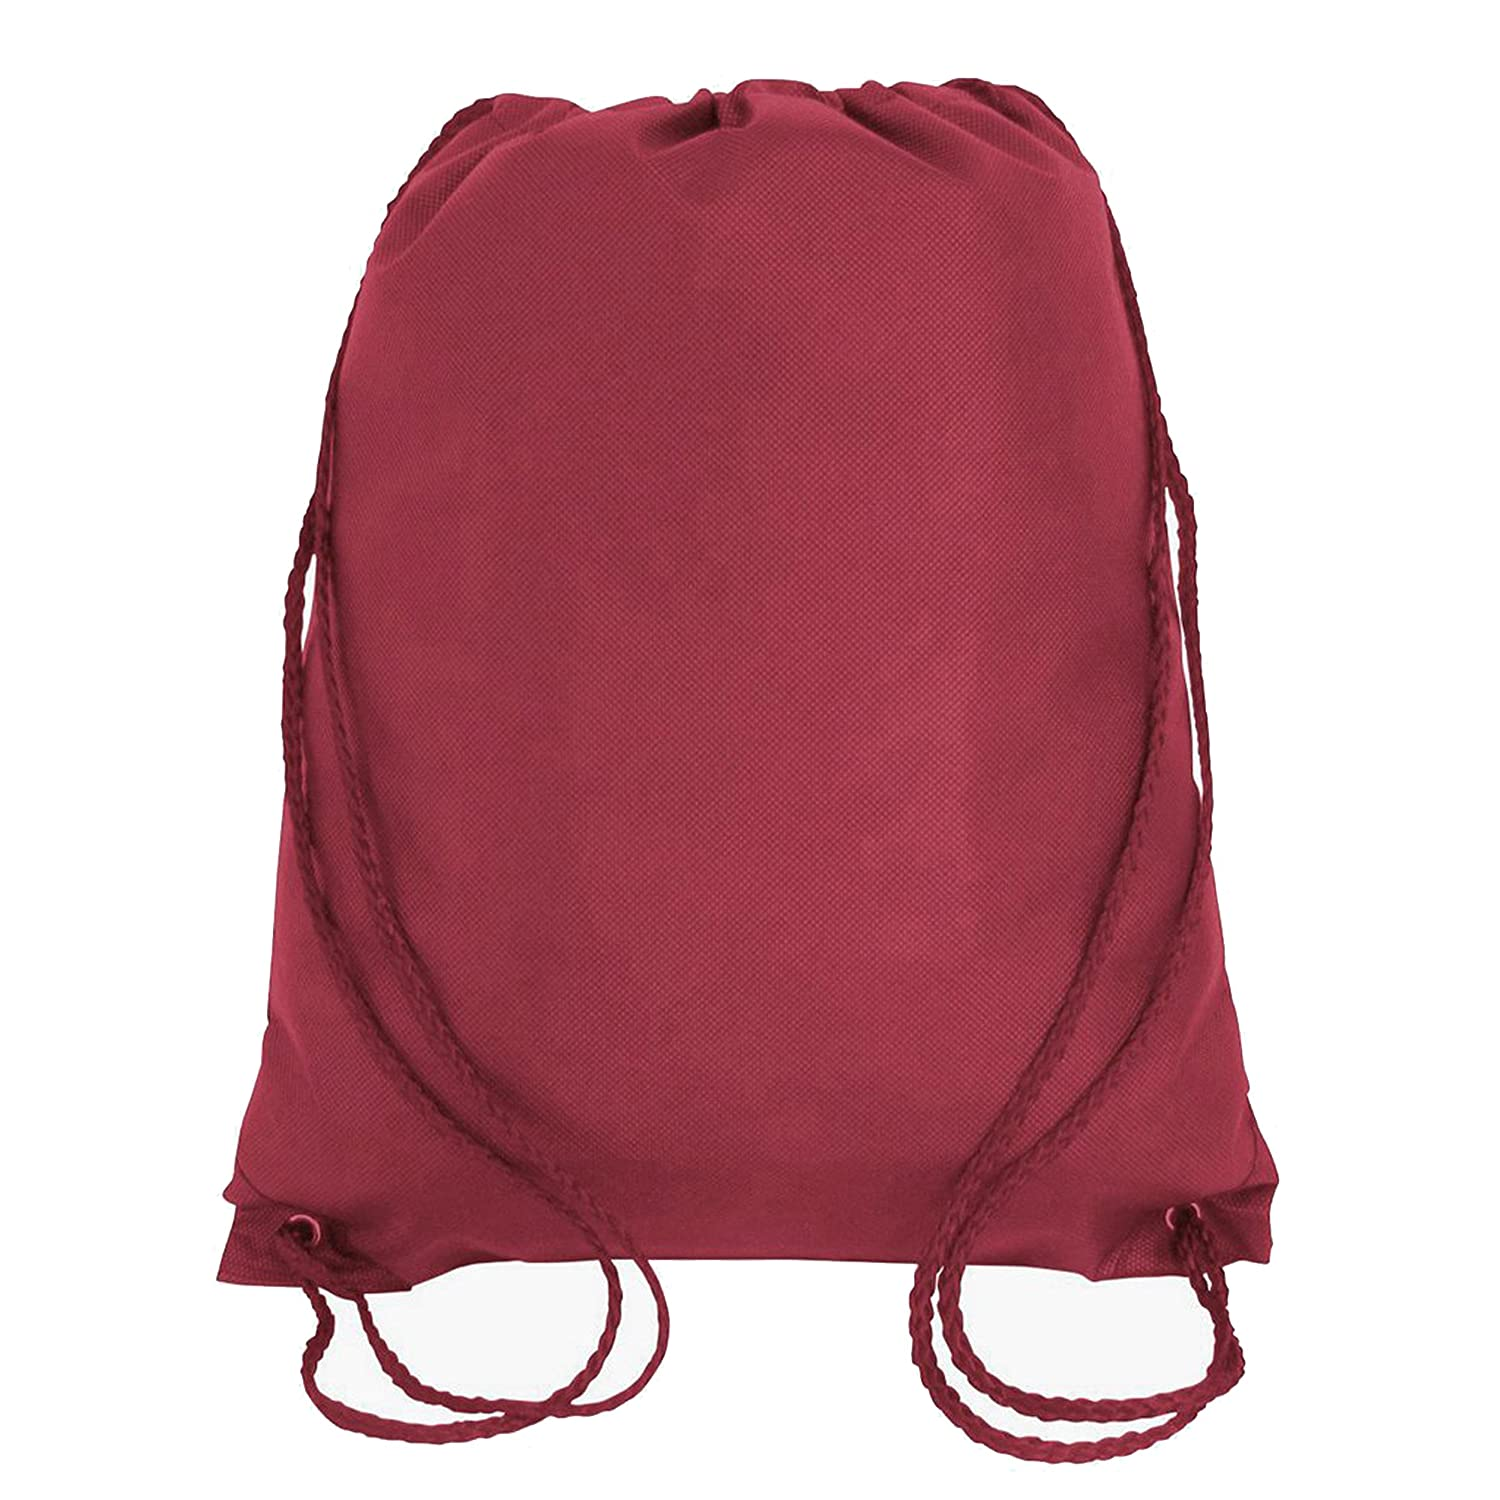 70618455119a 50 PACK - Economical Non Woven Well Made Drawstring Backpack Bags Bulk -  Giveaway Church